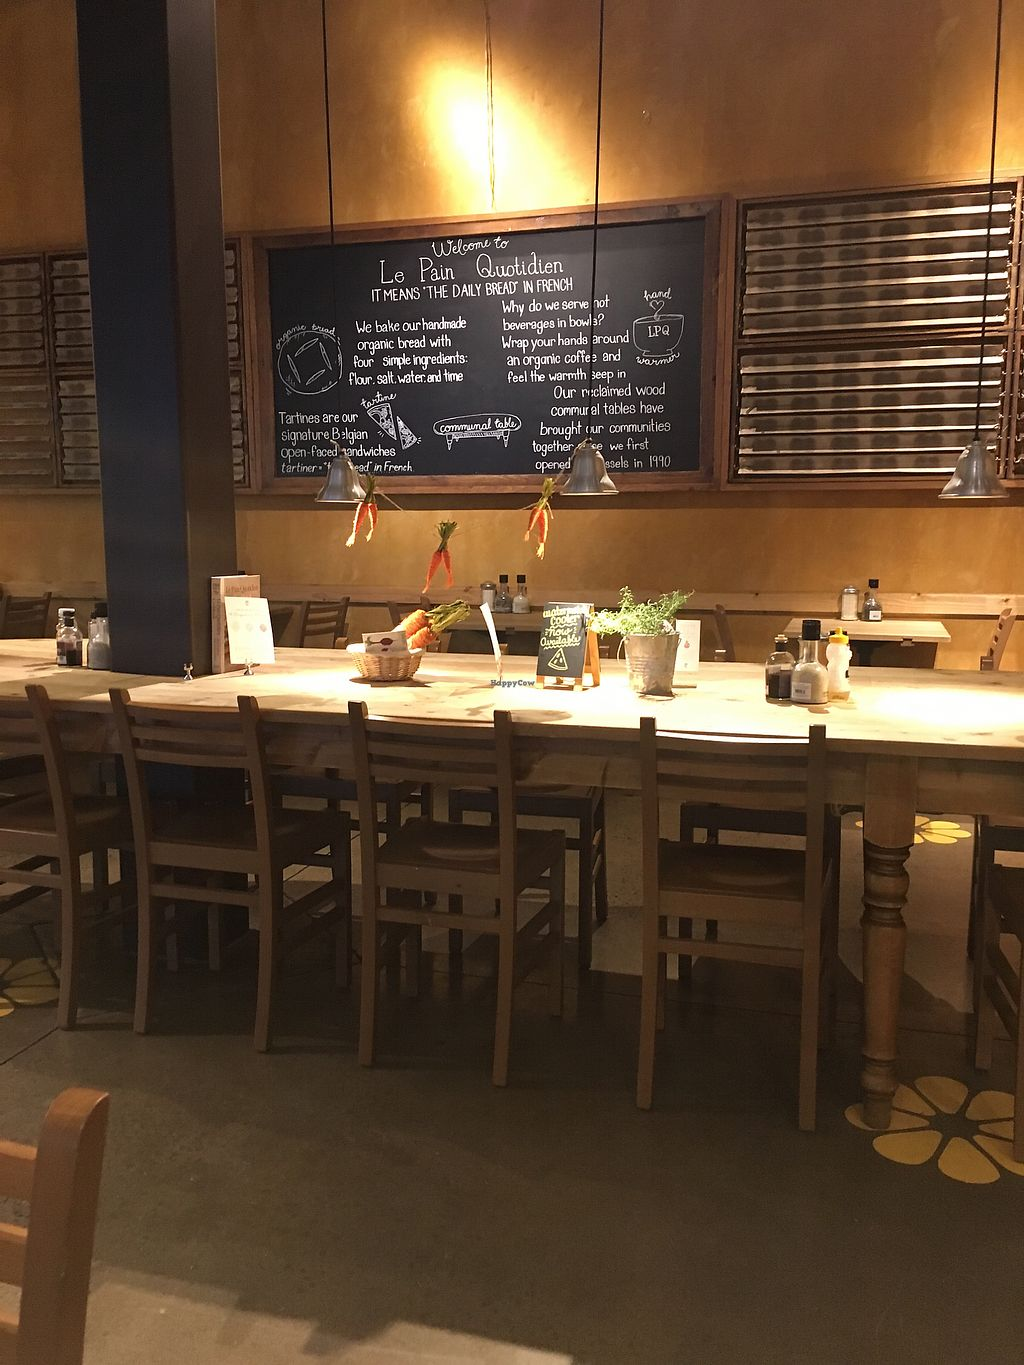 "Photo of Le Pain Quotidien  by <a href=""/members/profile/ralphsnowman"">ralphsnowman</a> <br/>area <br/> August 18, 2017  - <a href='/contact/abuse/image/84415/294109'>Report</a>"